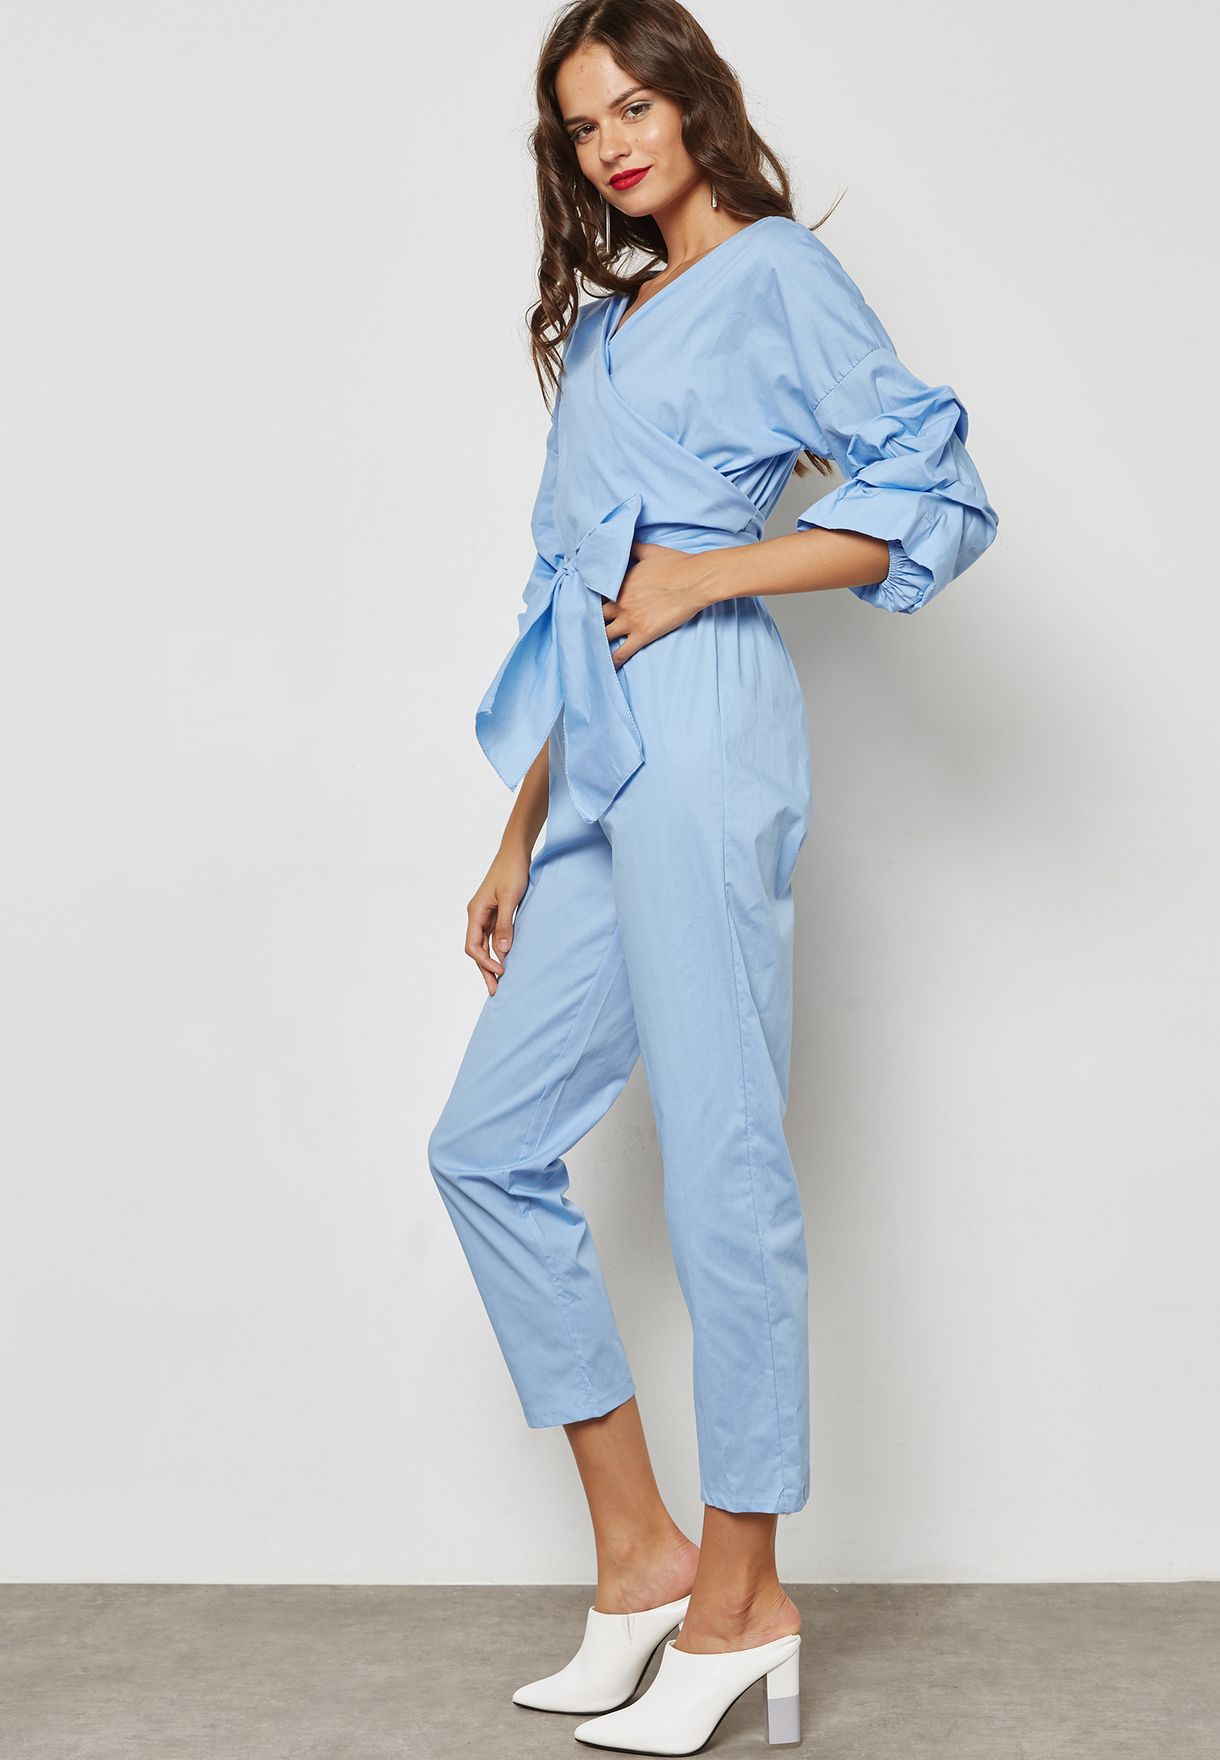 920f591ec5c Shop Ginger blue Puffed Sleeve Self Tie Cropped Jumpsuit 17113-C for ...